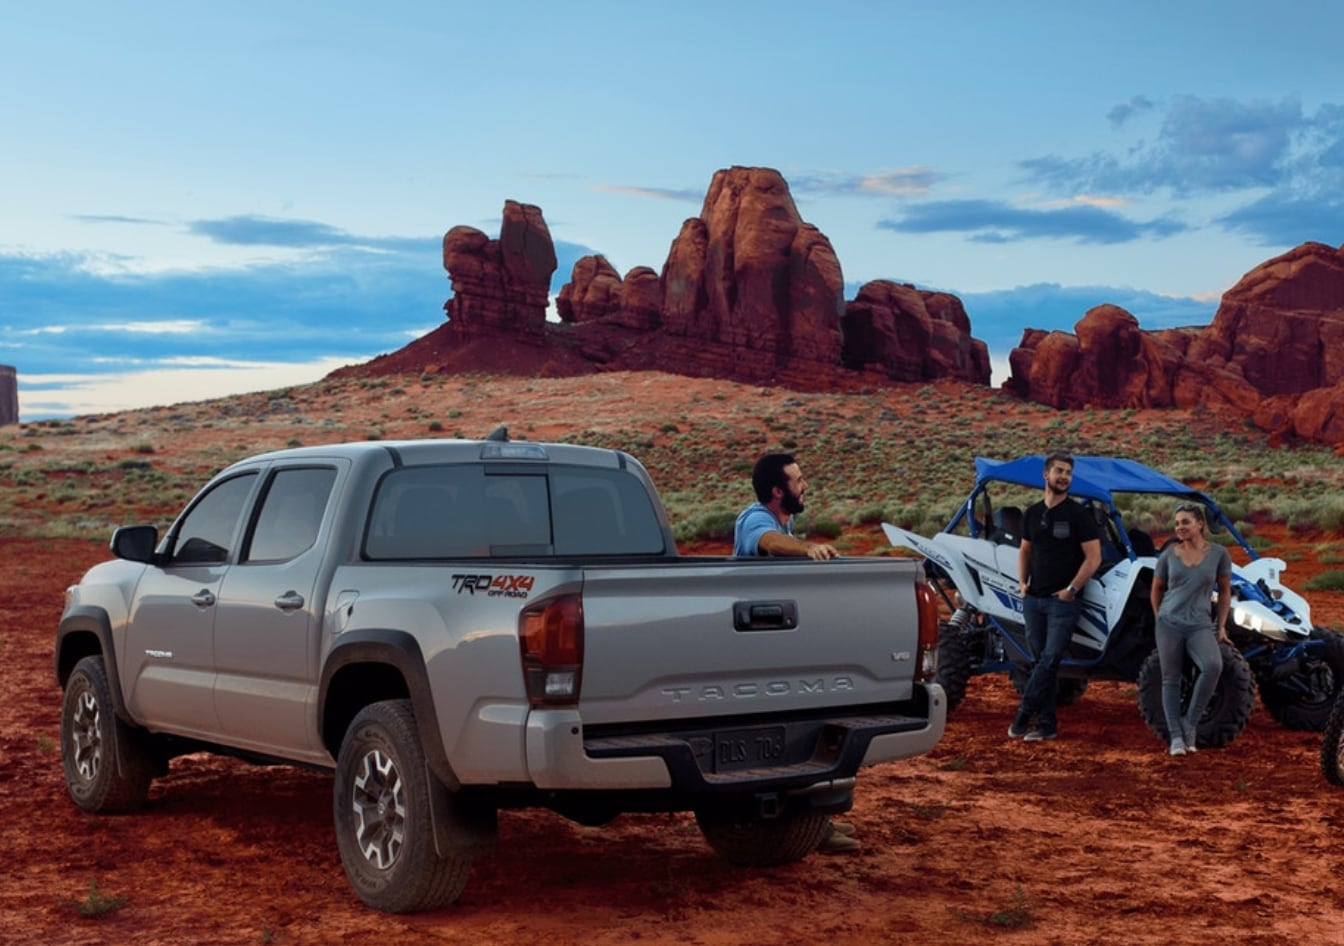 New Toyota Tacoma For Sale In Albuquerque Nm Finance